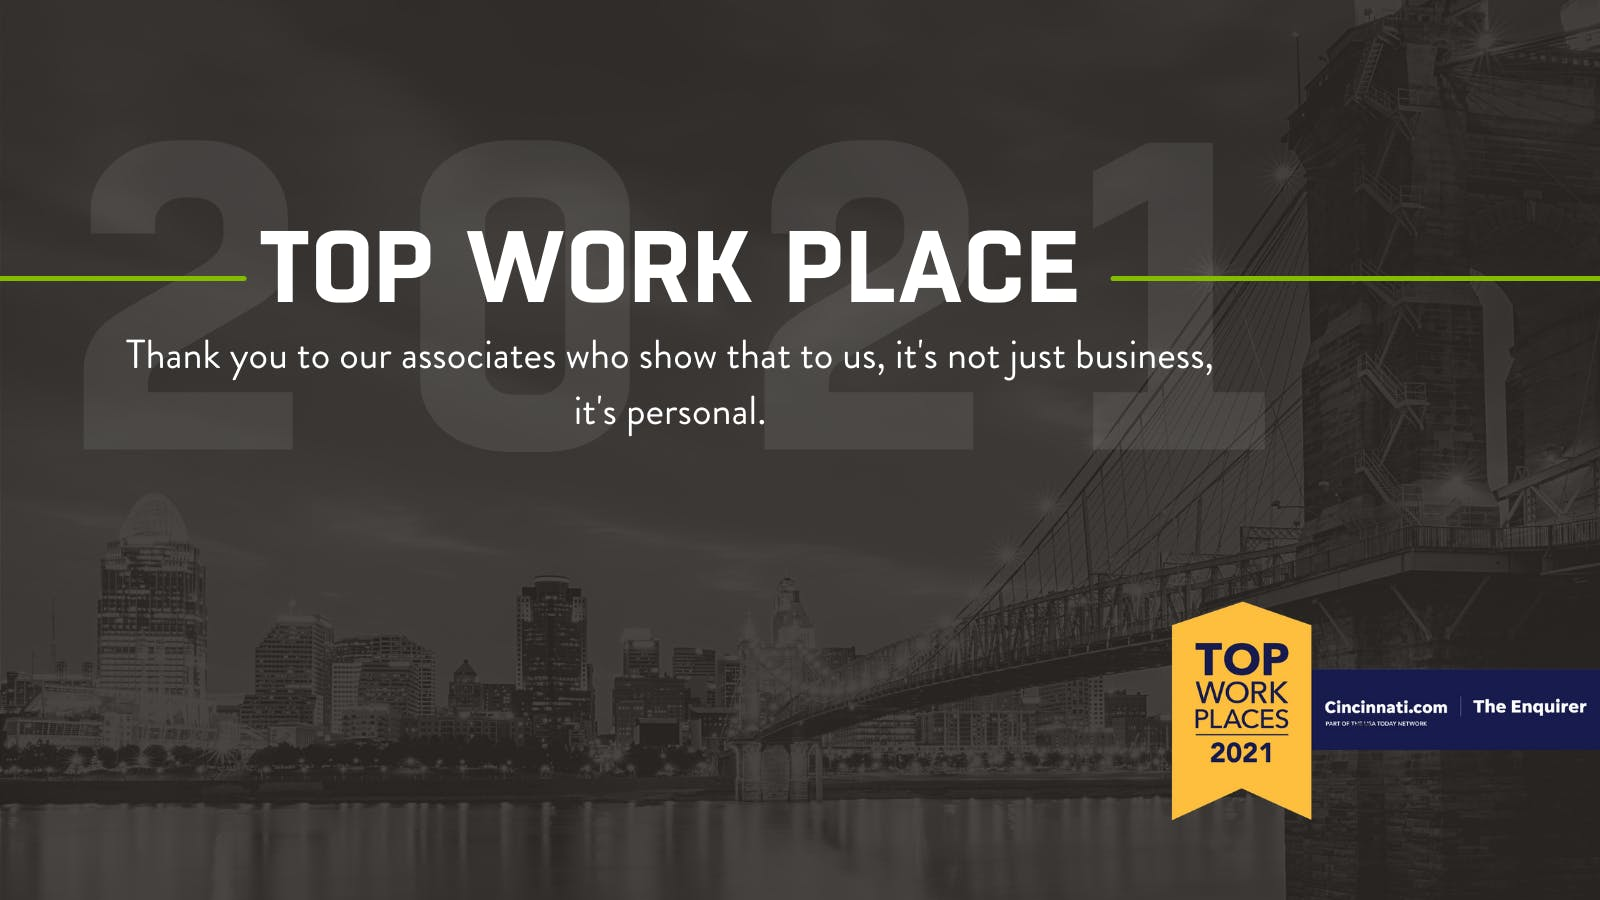 Mike Albert named a Top Work Place for 2021